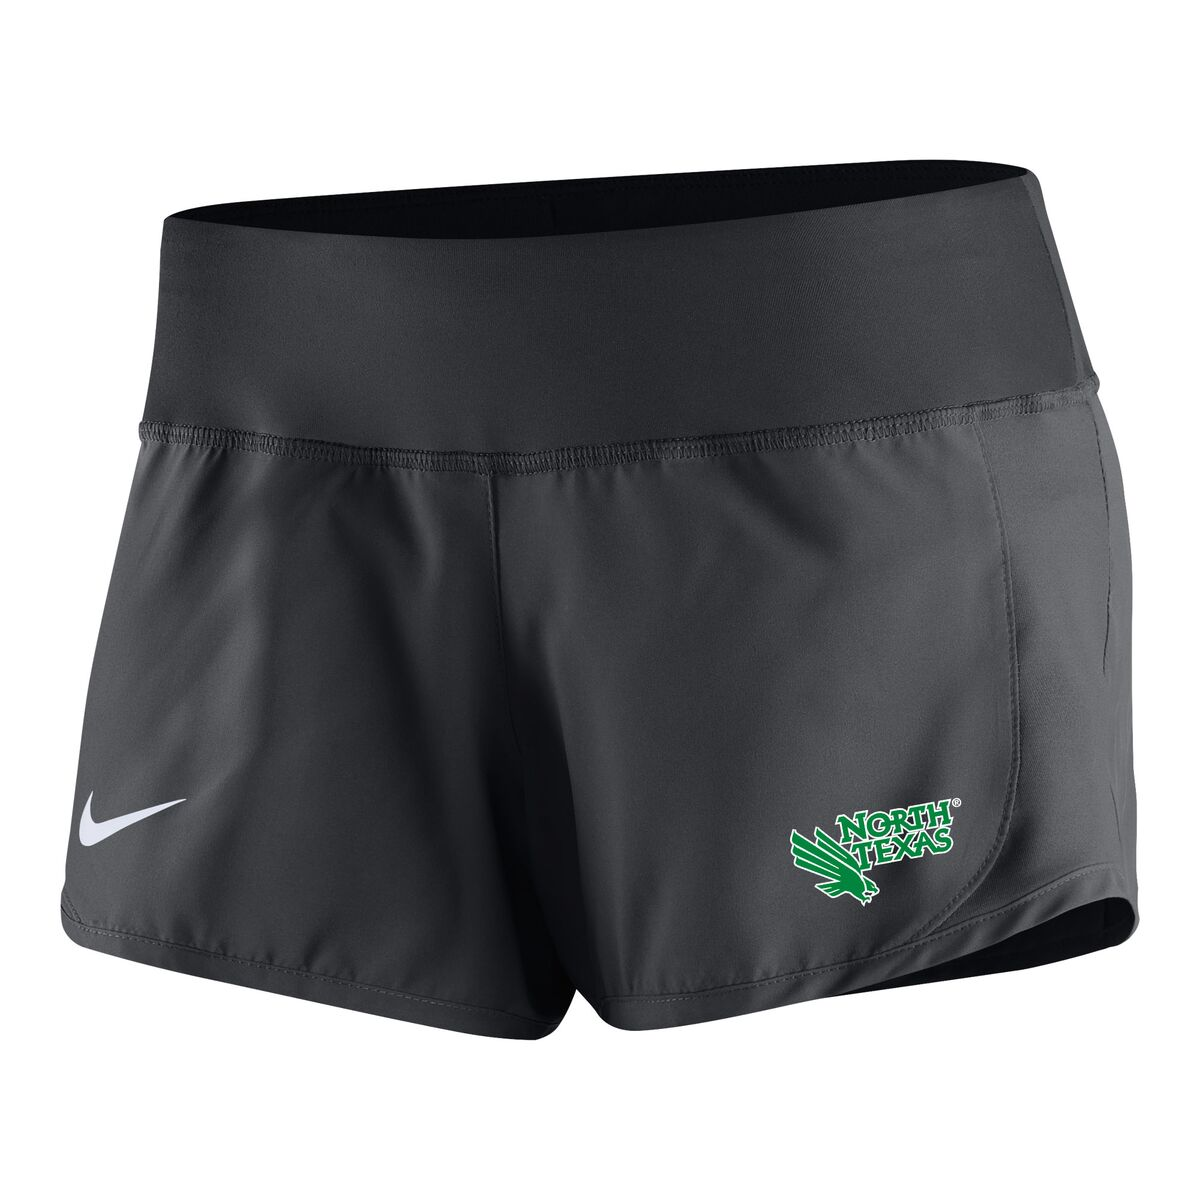 GEAR UP CREW SHORT